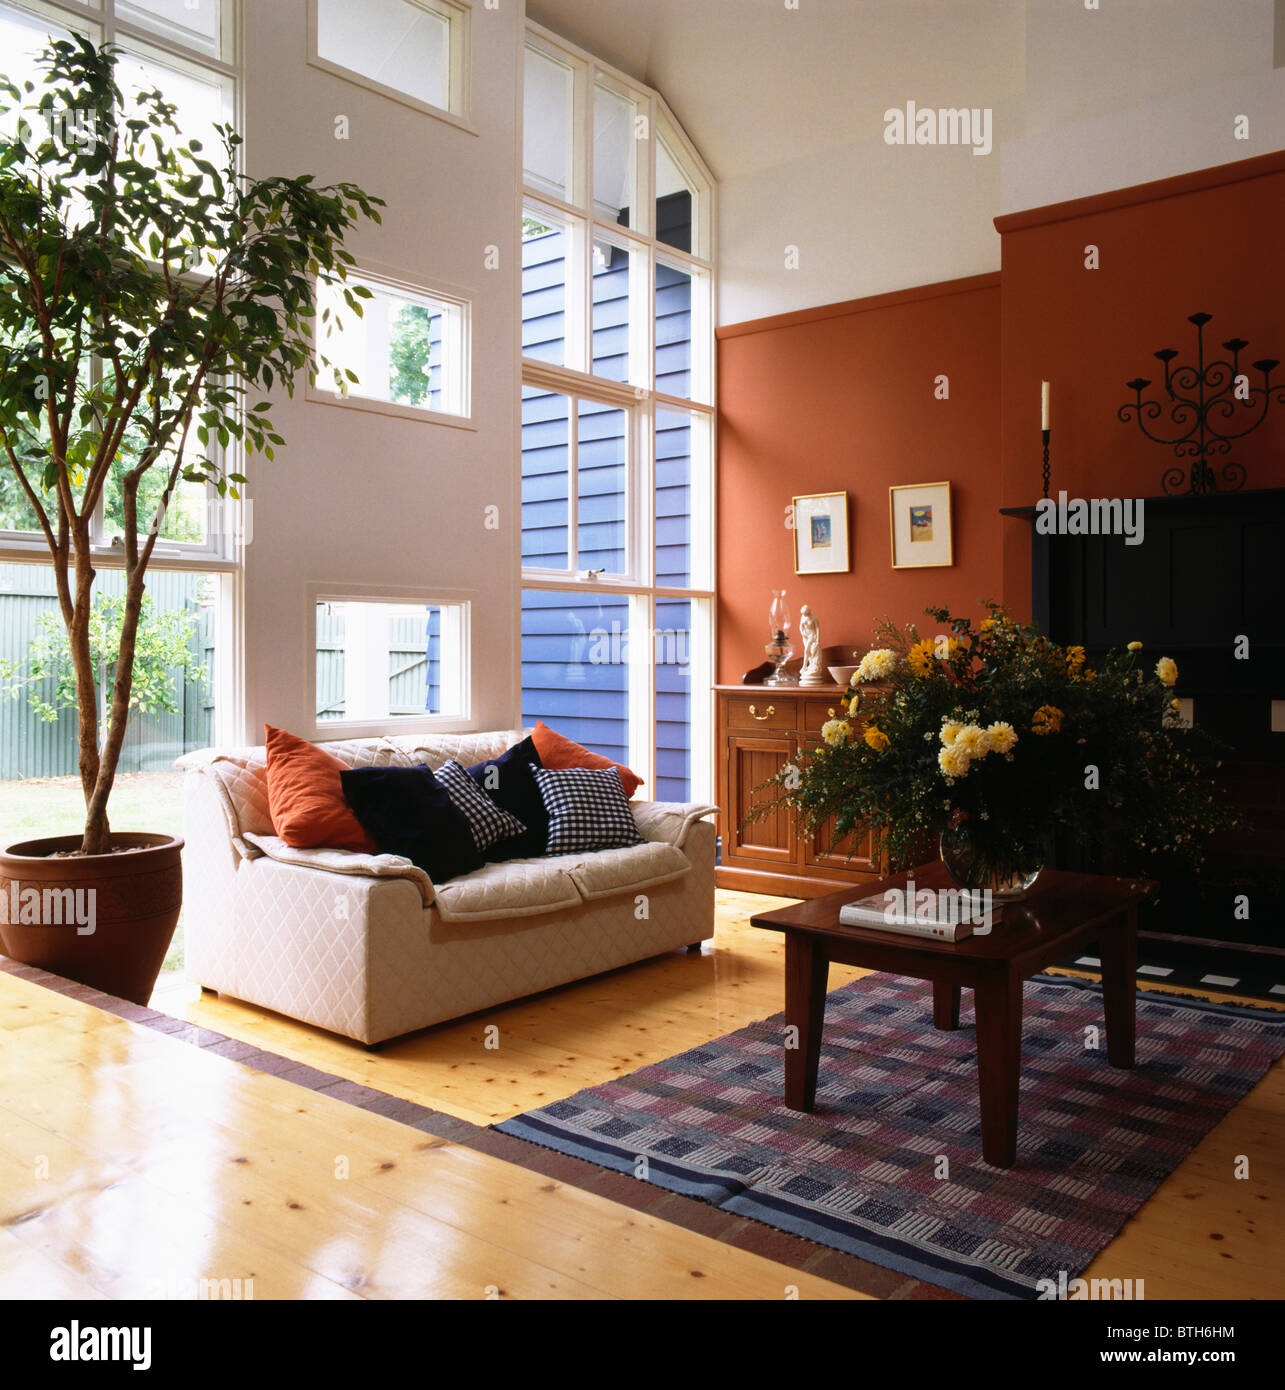 A Large Living Room To Socialise In: White Sofa And Tree In Pot In Large Modern Split-level